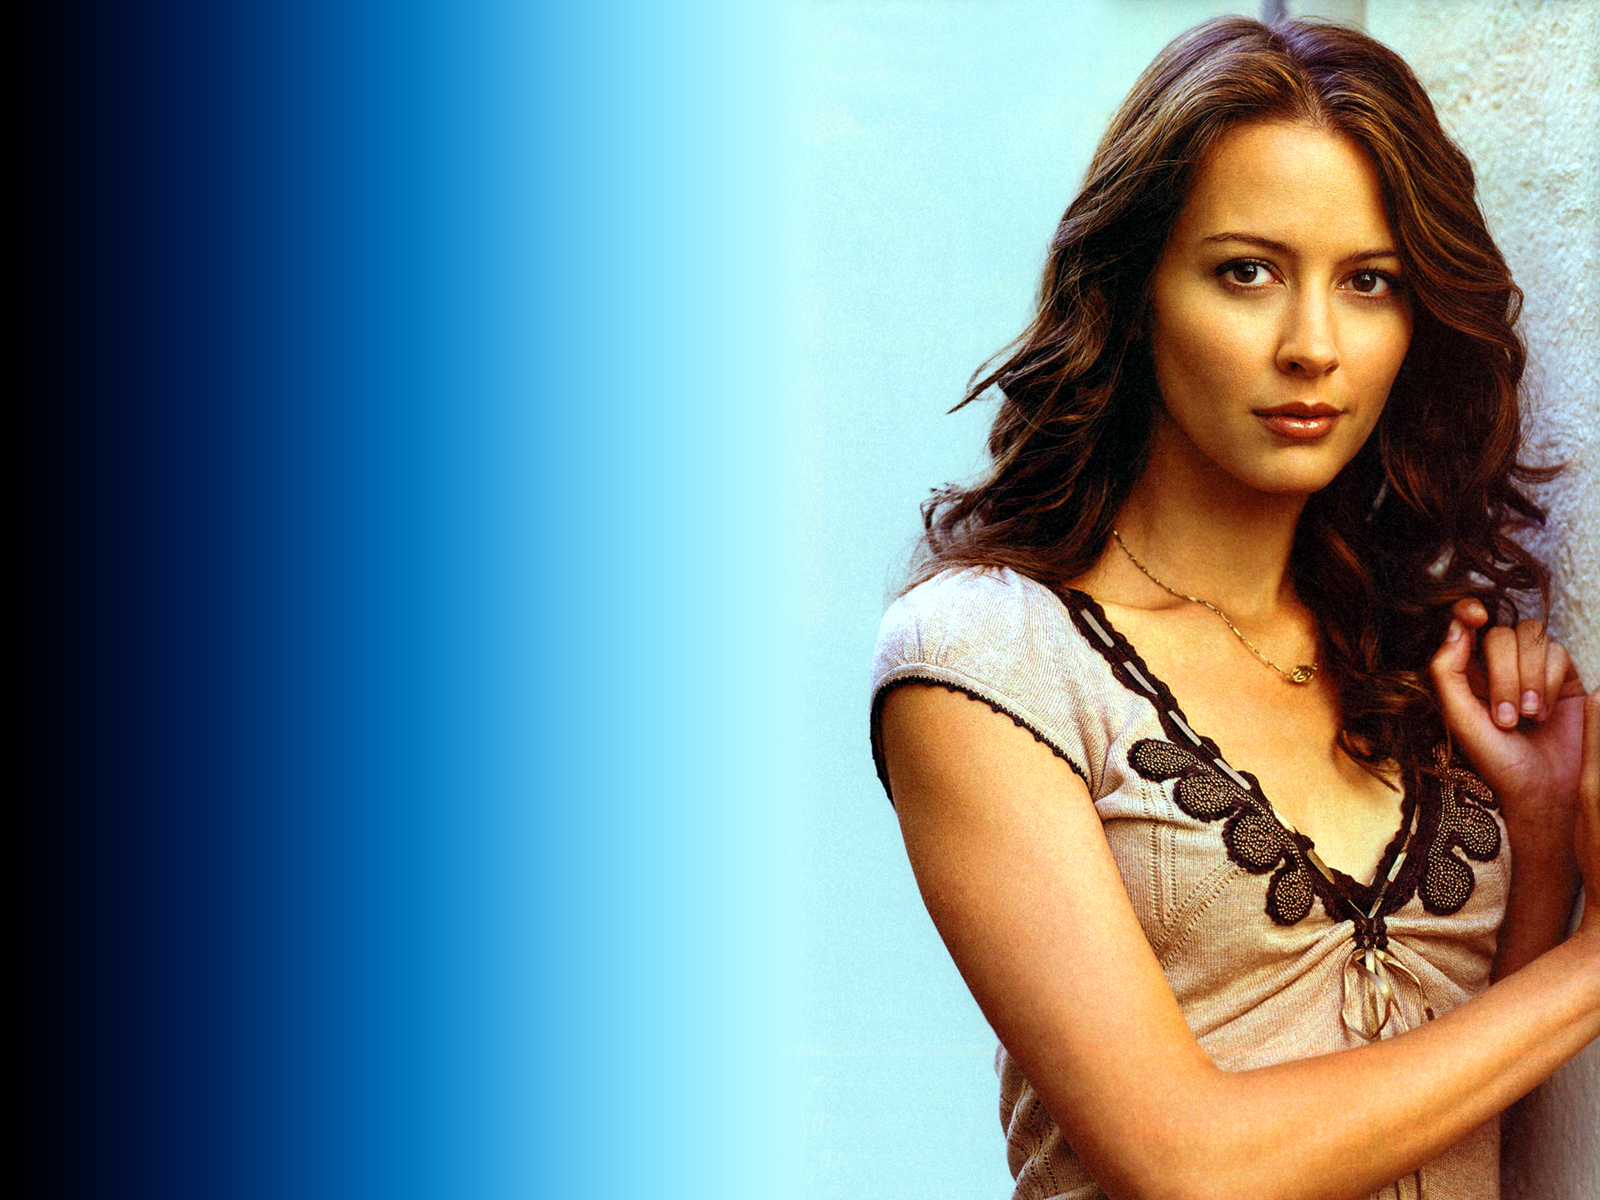 1600x1200 - Amy Acker Wallpapers 9